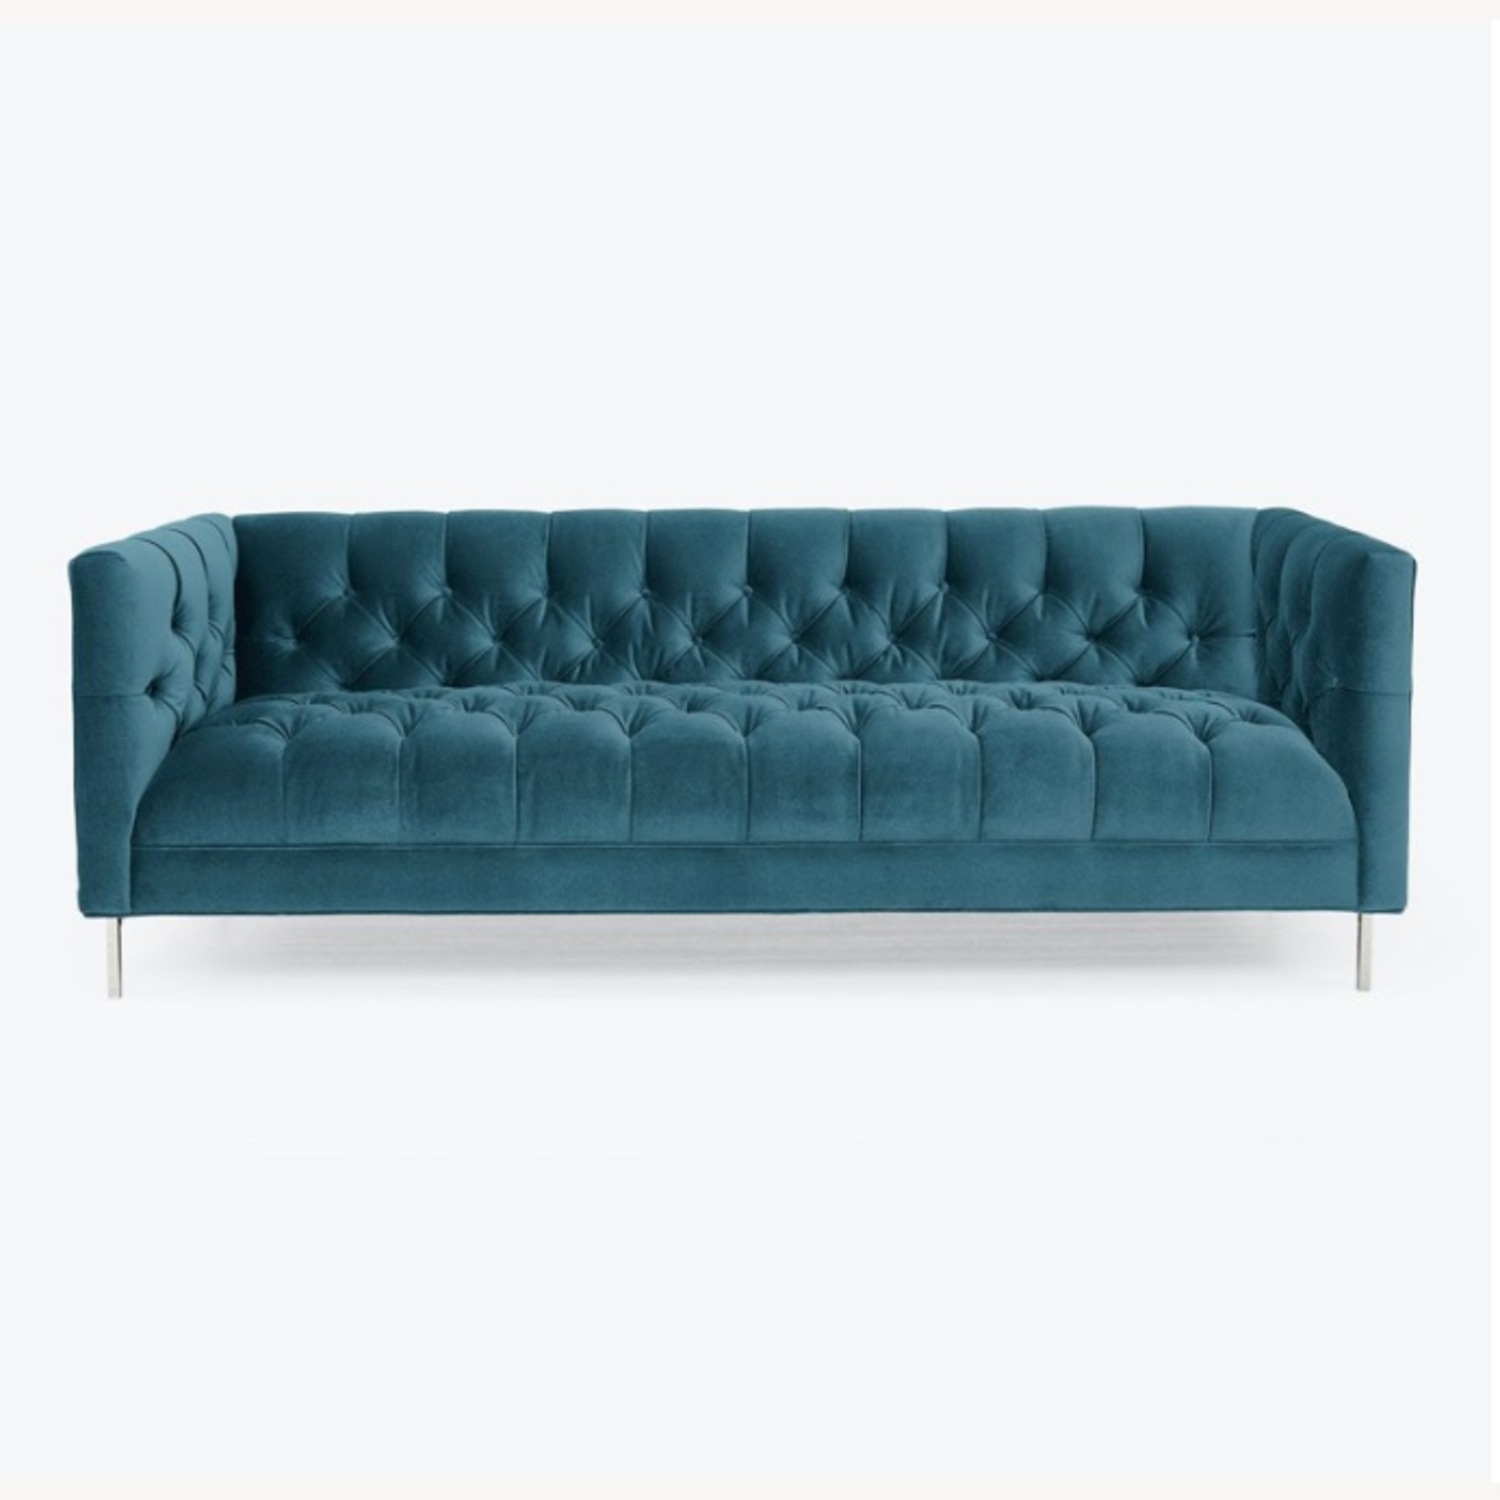 "ABC Tribeca 84"" Sofa (Cornflower Blue) - image-6"